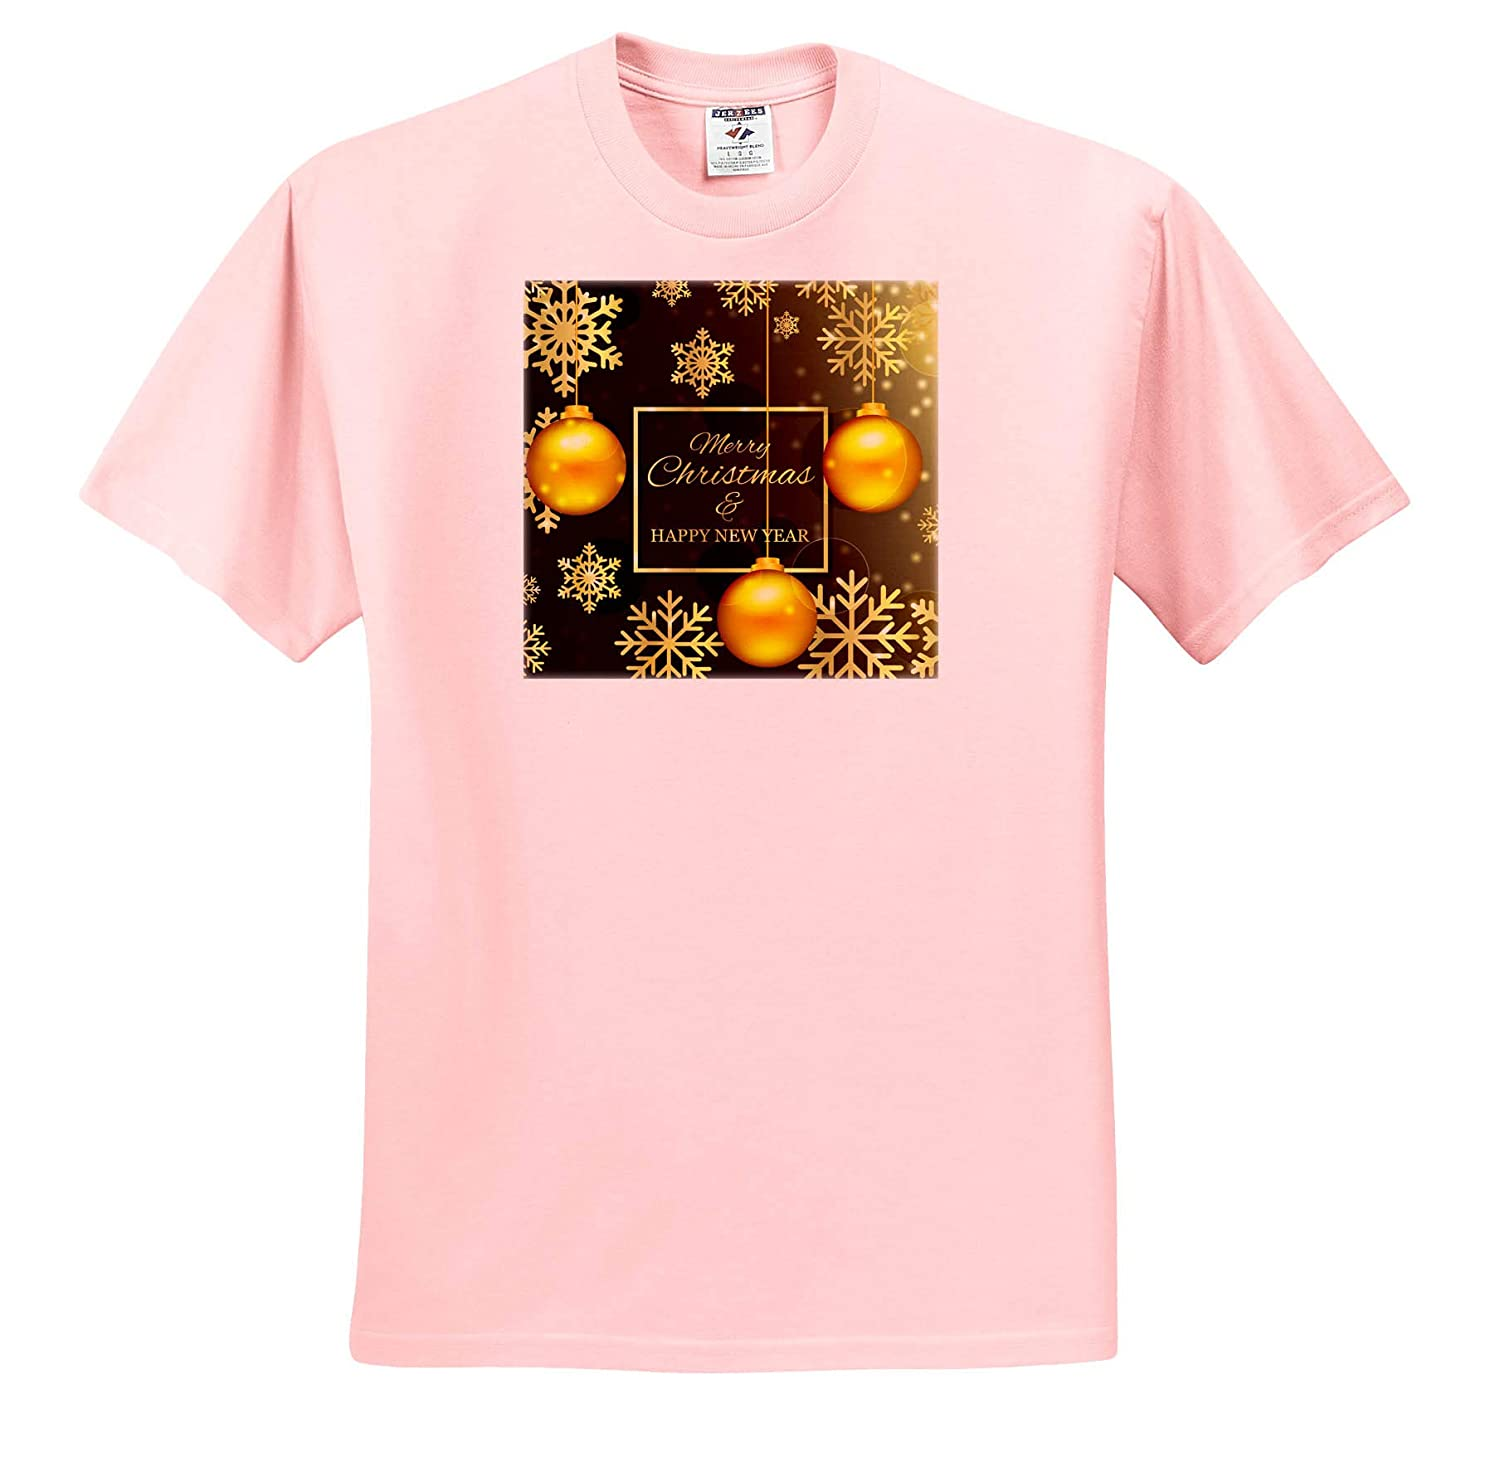 Merry Christmas and a Happy New Year with Snow and Balls T-Shirts 3dRose Sven Herkenrath Christmas